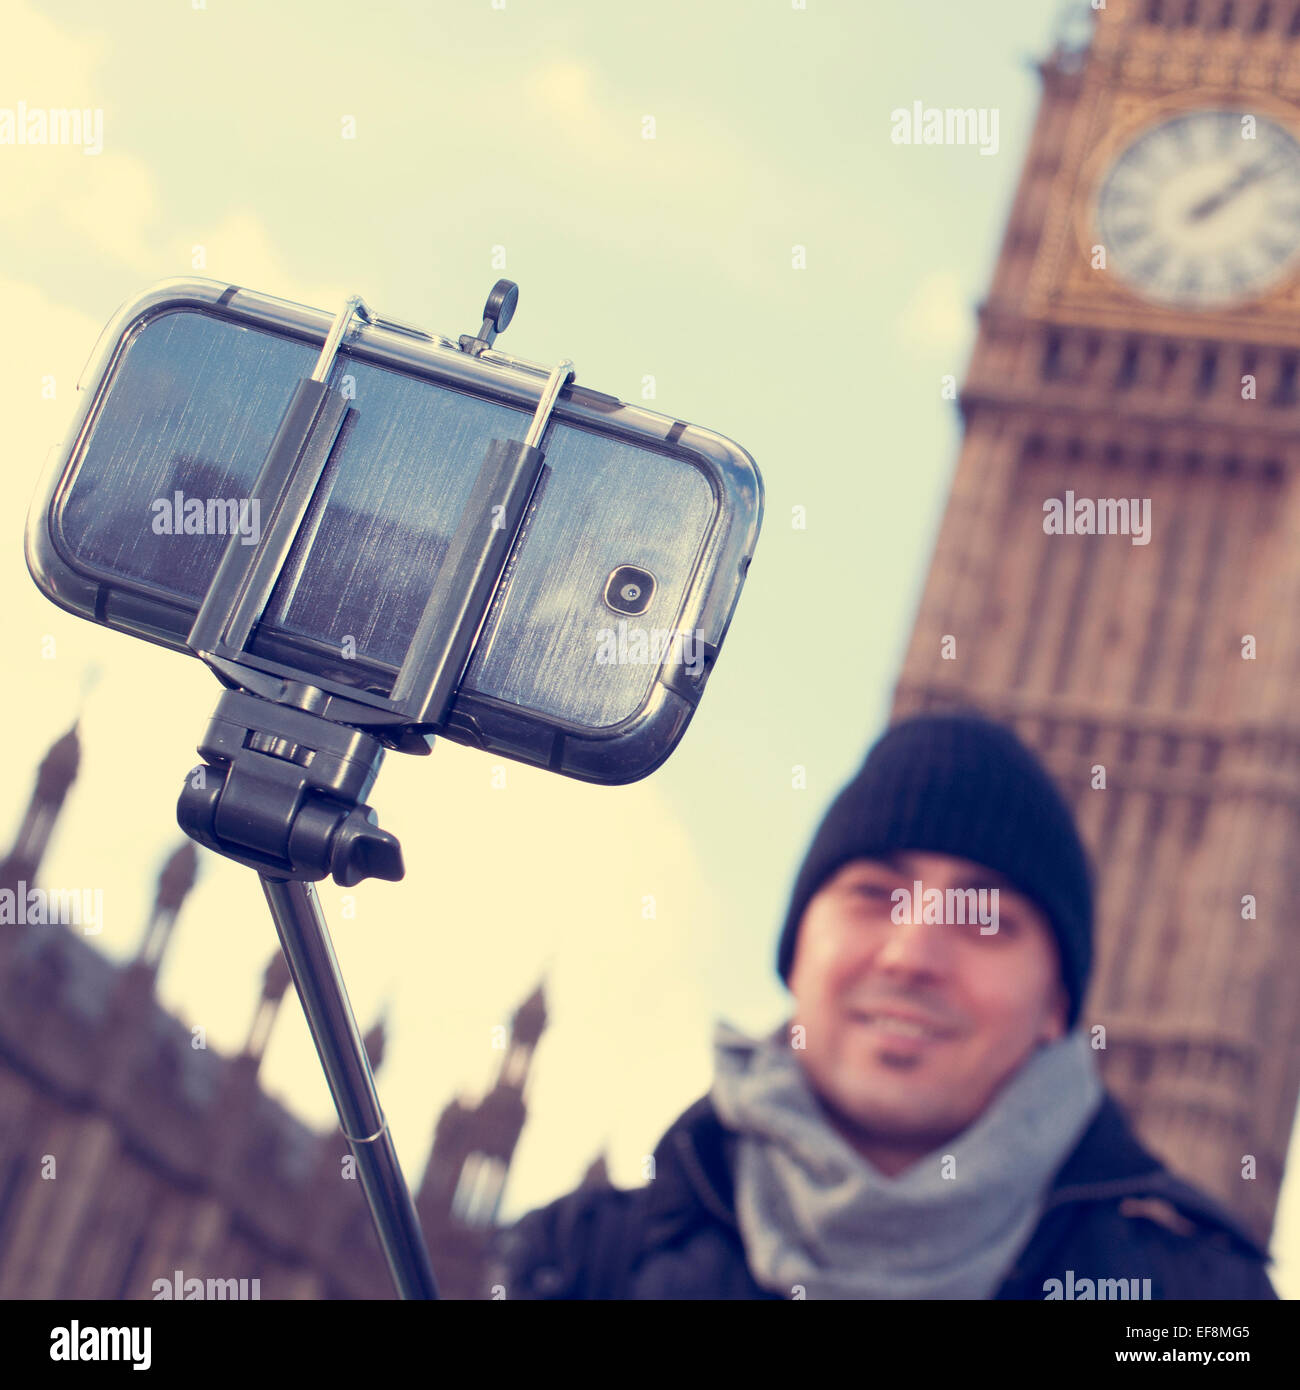 man taking a self-portrait with a selfie stick in front of the Big Ben in London, United Kingdom, with a filter - Stock Image